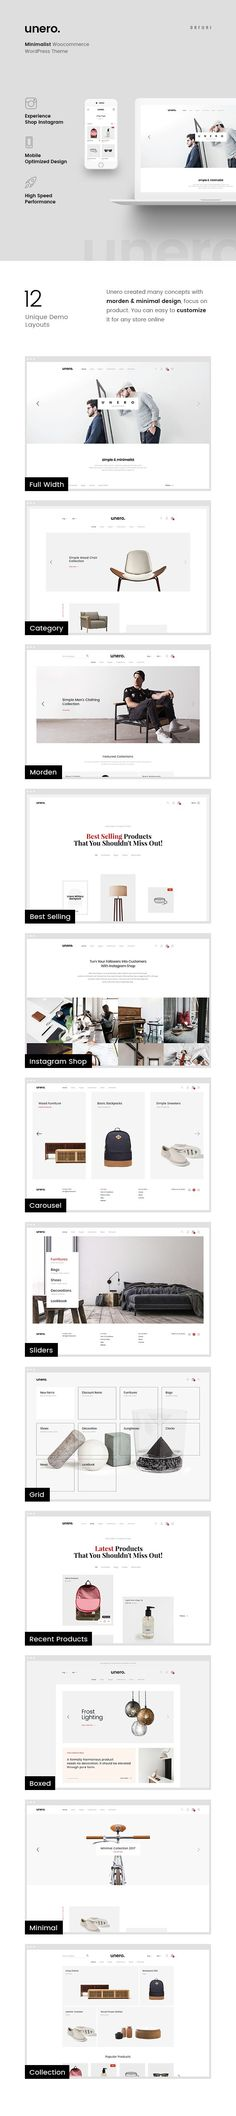 Unero is a clean & minimal AJAX WooCommerce WordPress Theme for shopping online stores. With design minimal and focus on products, Unero will make your online store look more impressive and attractive to viewers. Help increase high conversation rate to buy product with your customers so quickly. Download ➝ https://themeforest.net/item/unero-minimalist-ajax-woocommerce-wordpress-theme/19729674?ref=rabosch